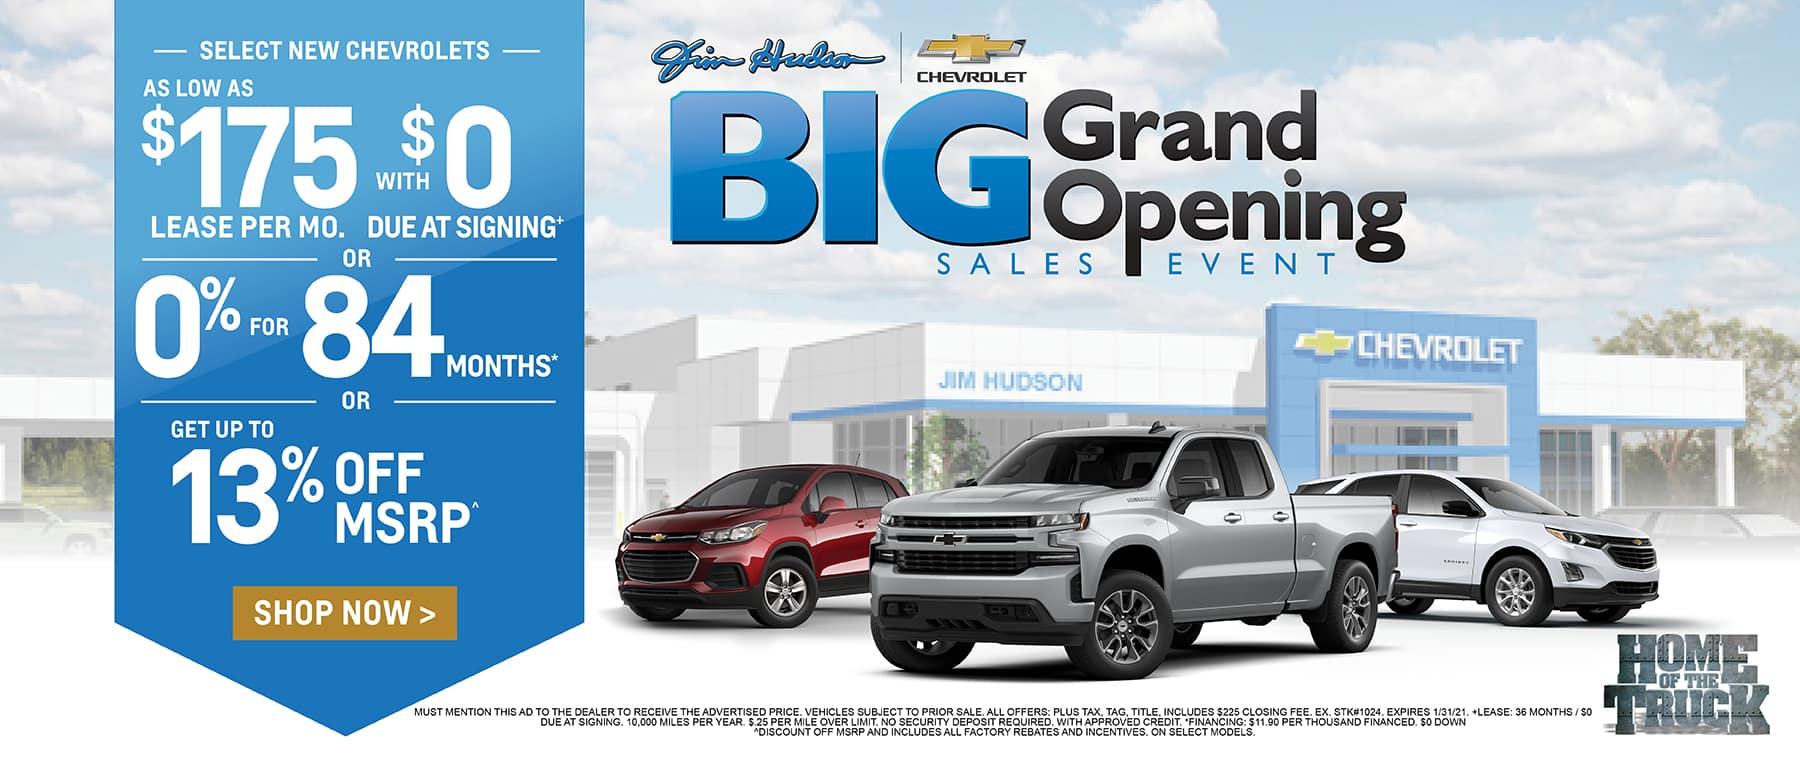 New Chevrolets - Big Grand Opening Sales Event